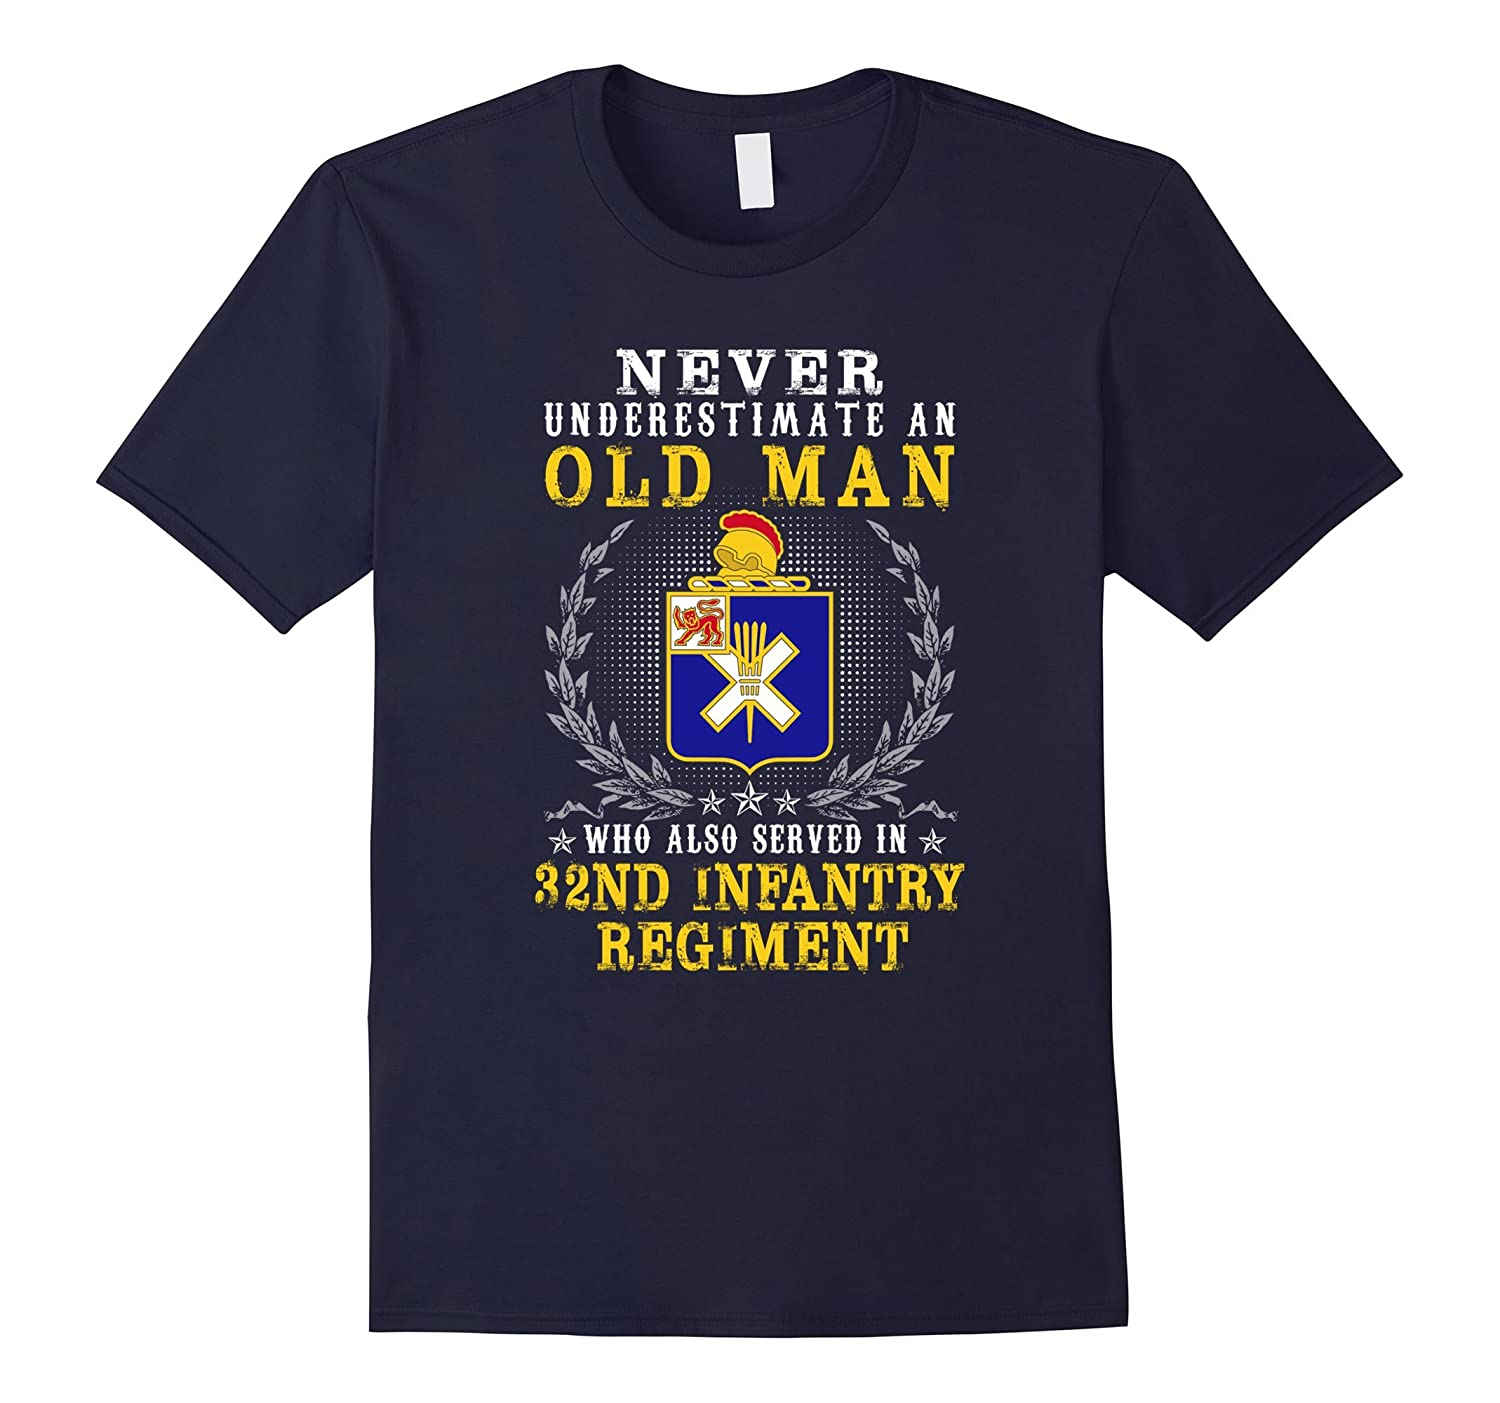 32nd infantry regiment tshirt, never underestimate an old ma-BN